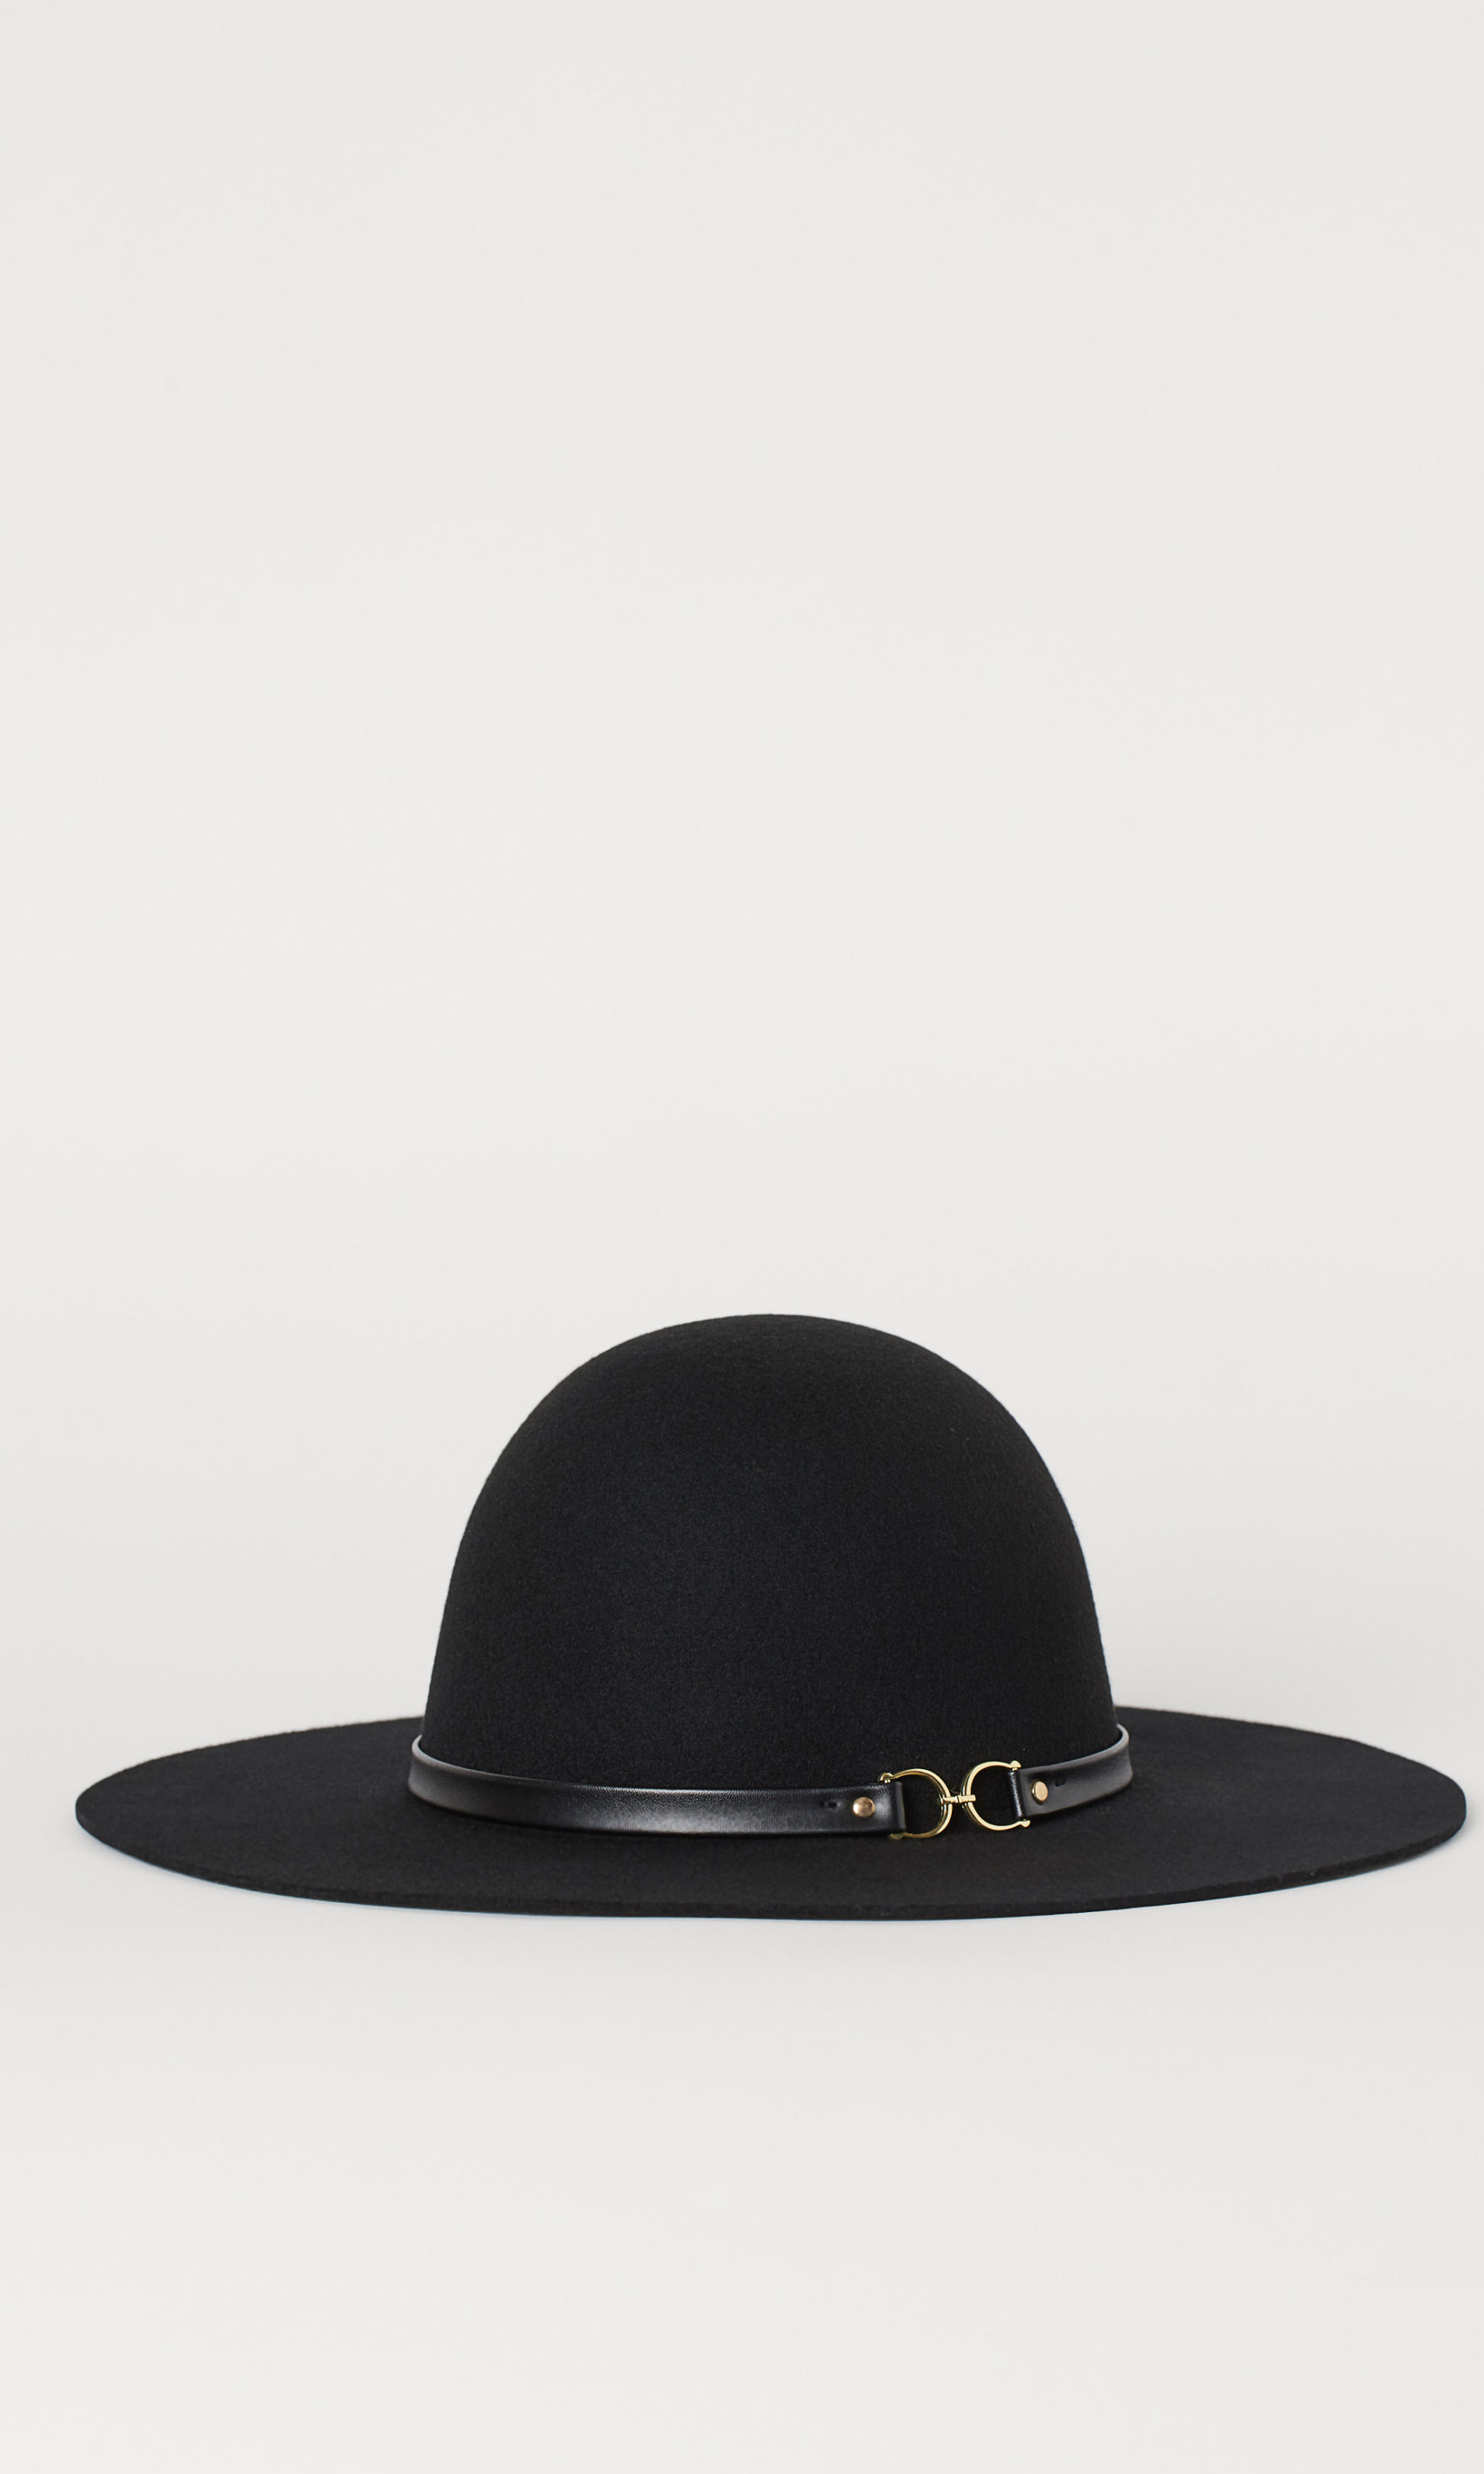 "<strong><a href=""https://ca.hellomagazine.com/tags/0/hm"">H&M</a></strong>'s black Felted Wool Hat offers the same versatility as Kate's navy style. This version feels extra special thanks to the faux leather band with golden D-ring detail.</p><p>Felted Wool Hat, $34.99, <a href=""https://www2.hm.com/en_ca/productpage.0818890001.html"">H&M</a></p><p>Screenshot via hm.com"